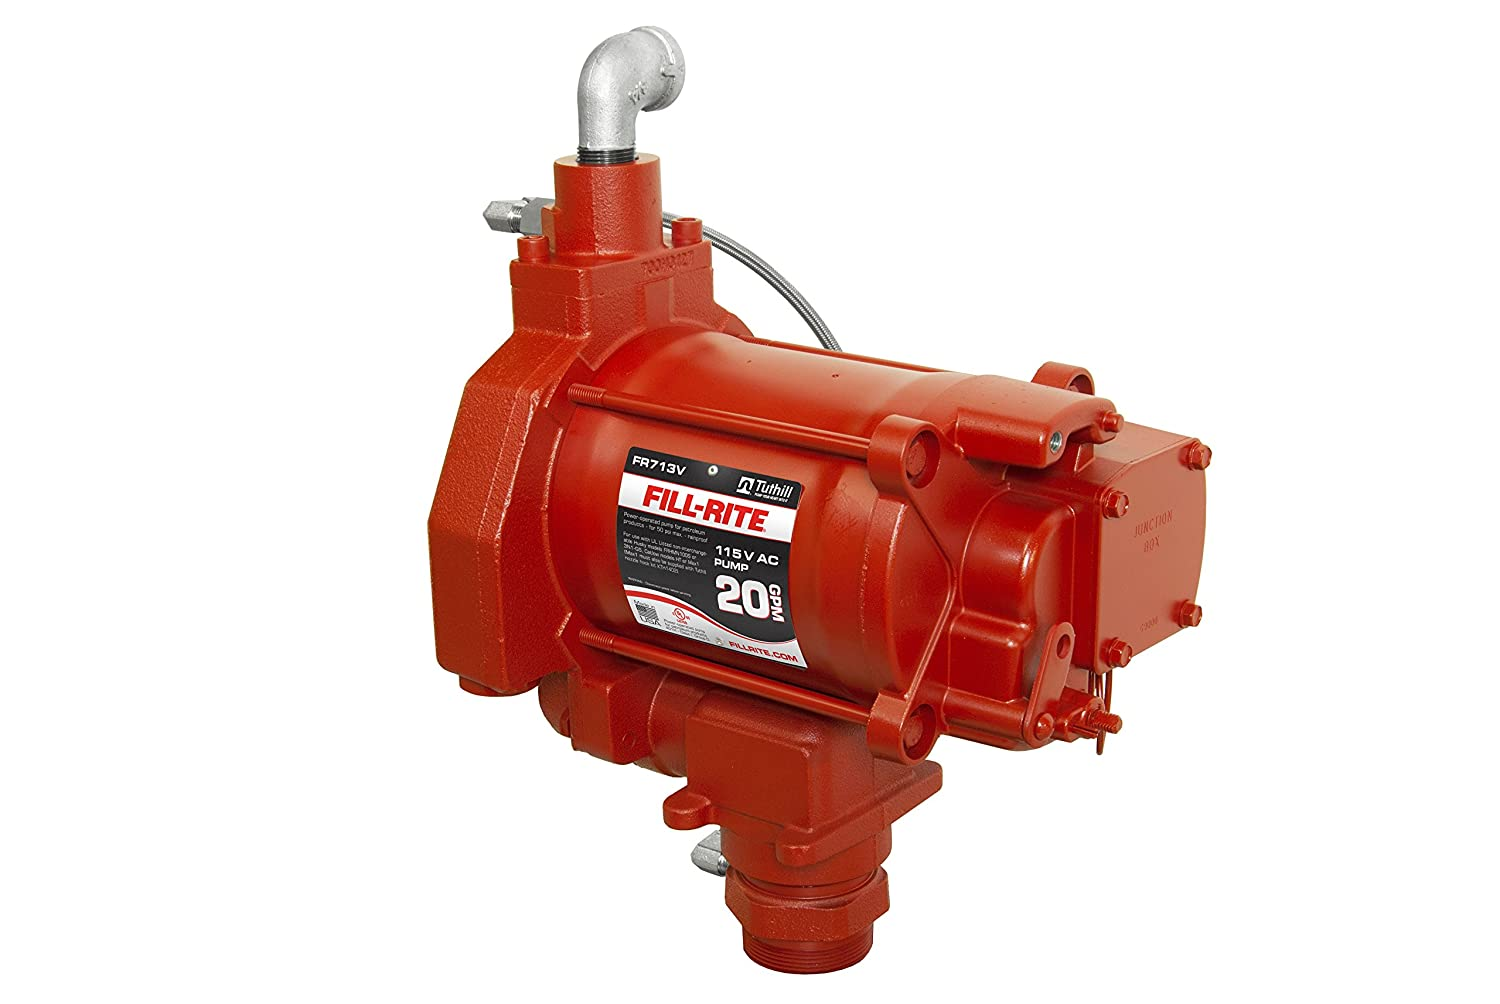 Fill Rite Fr713v 115v Ac Pump For Use With Ast Remote Dispensers Electrical Wiring In The Home And Well Wire Colors Gas Or Diesel 1 3 Hp Industrial Pumps Scientific